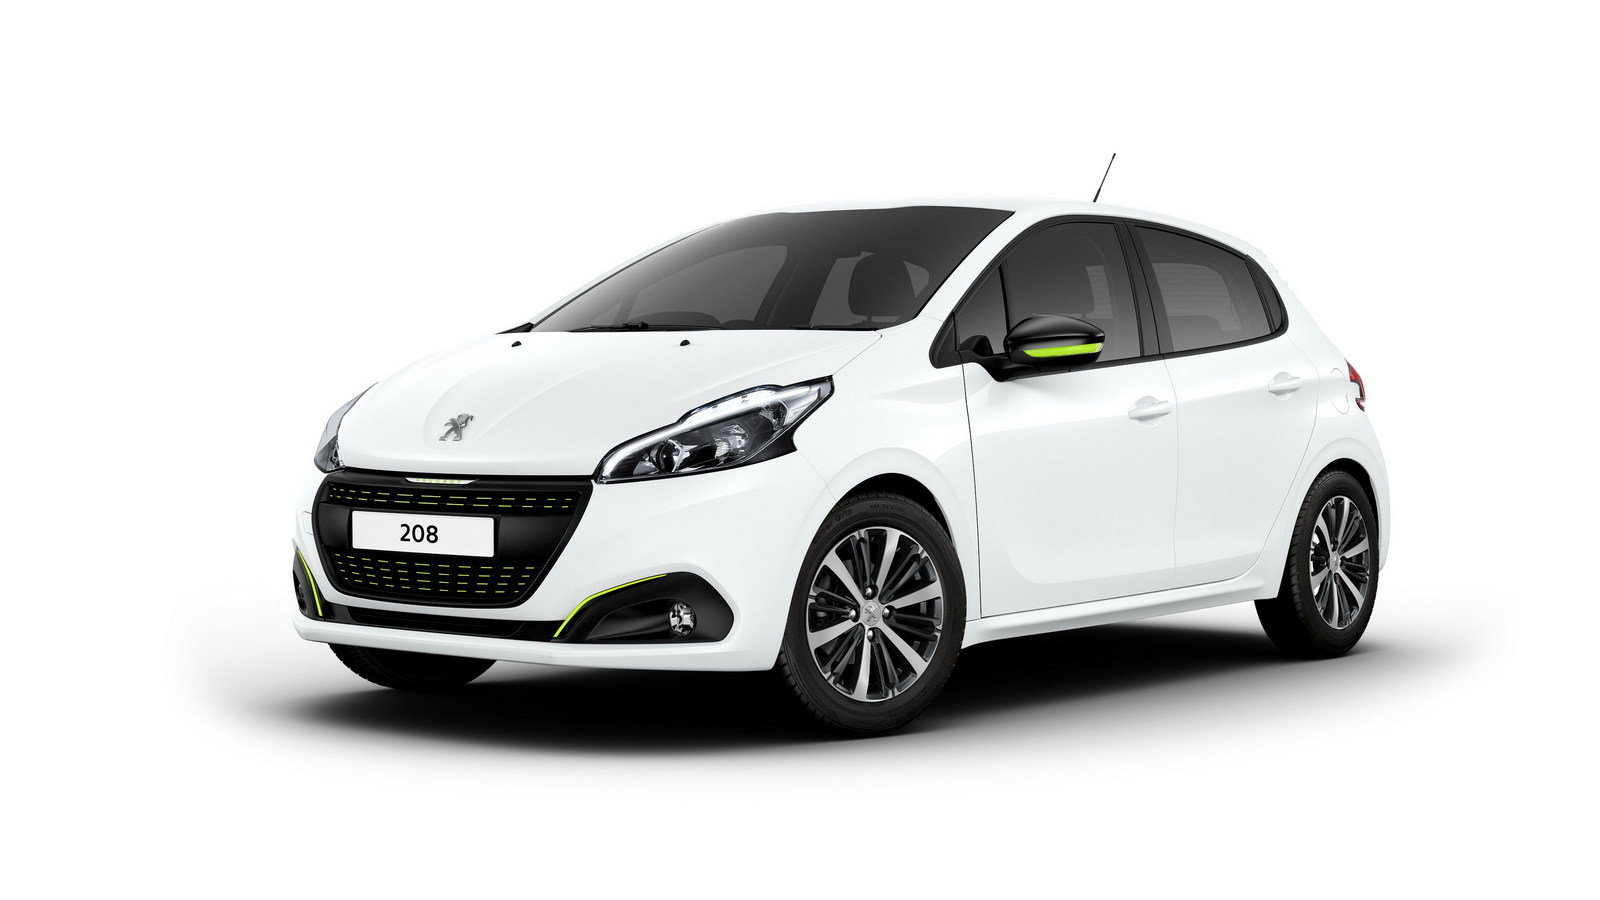 2016 peugeot 208 xs special edition picture 671301 car review top speed. Black Bedroom Furniture Sets. Home Design Ideas